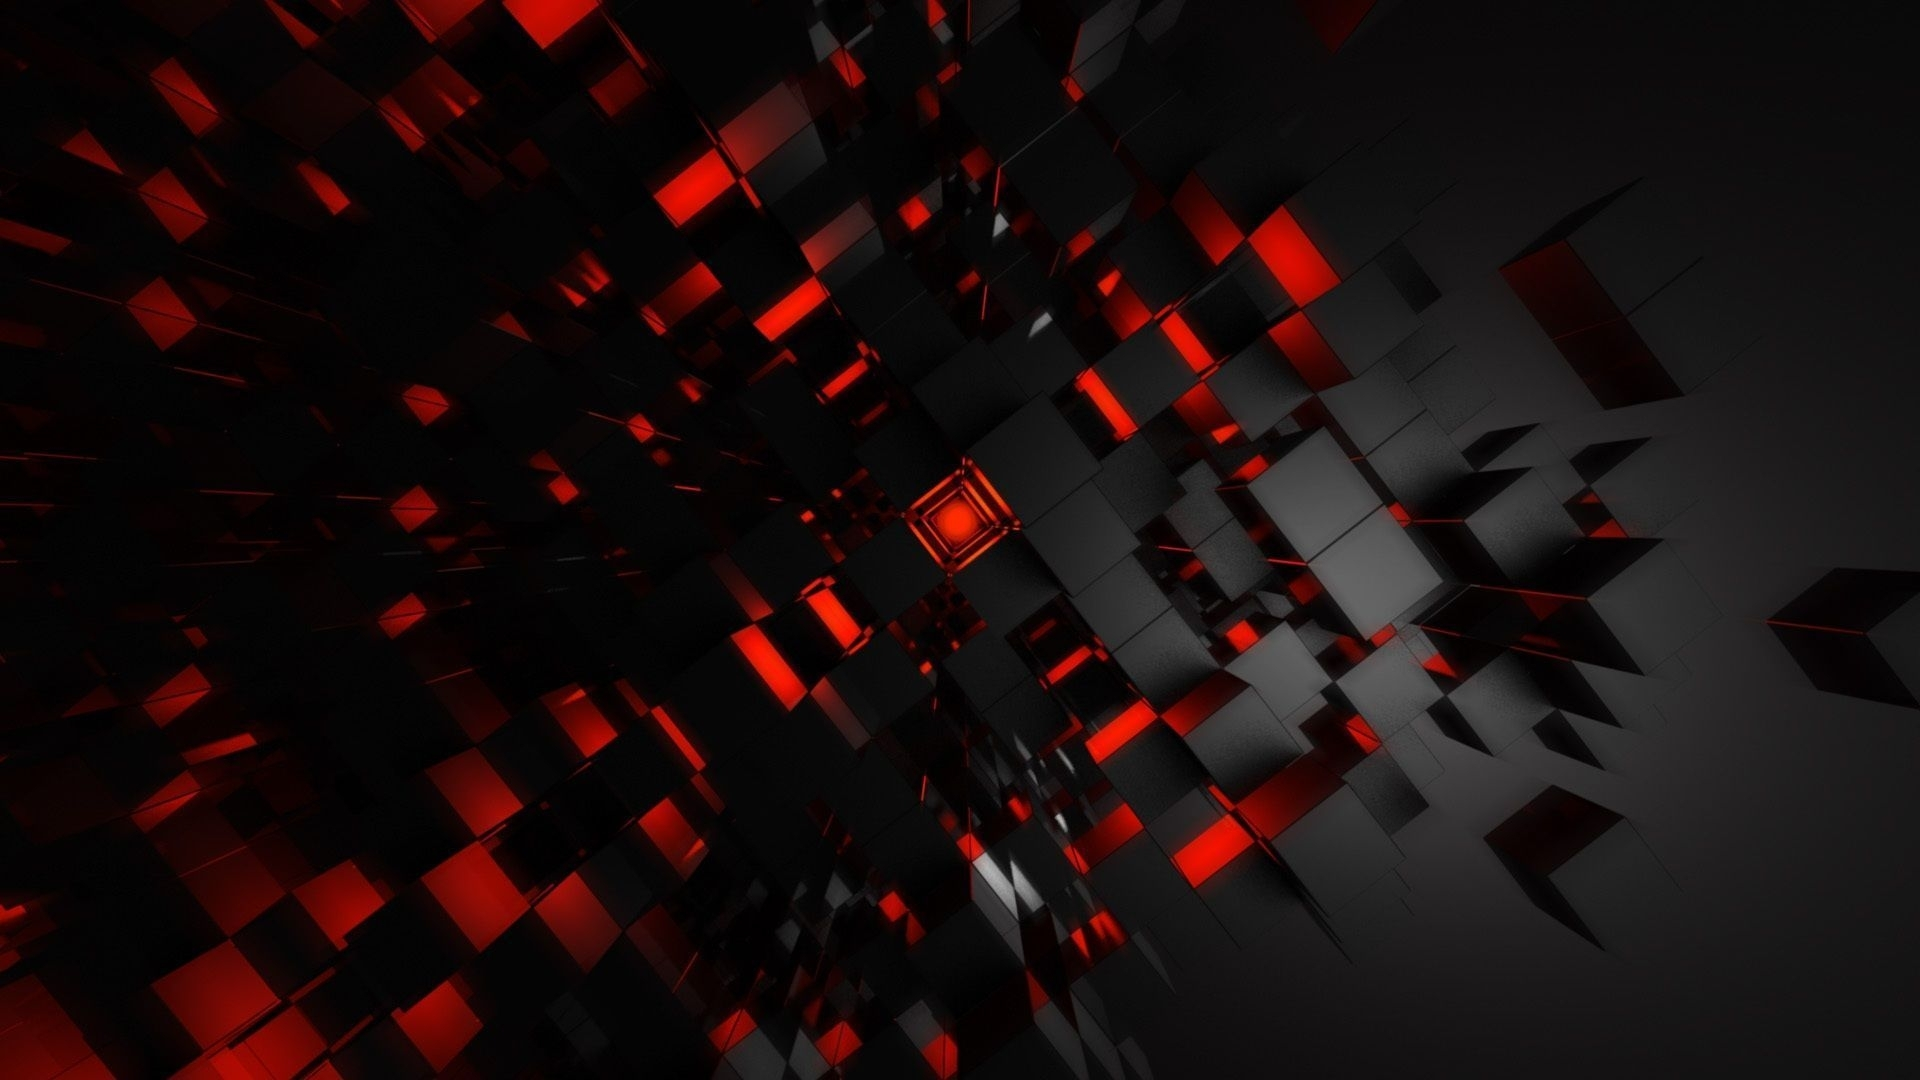 black and red wallpapers hd - wallpaper cave | epic car wallpapers